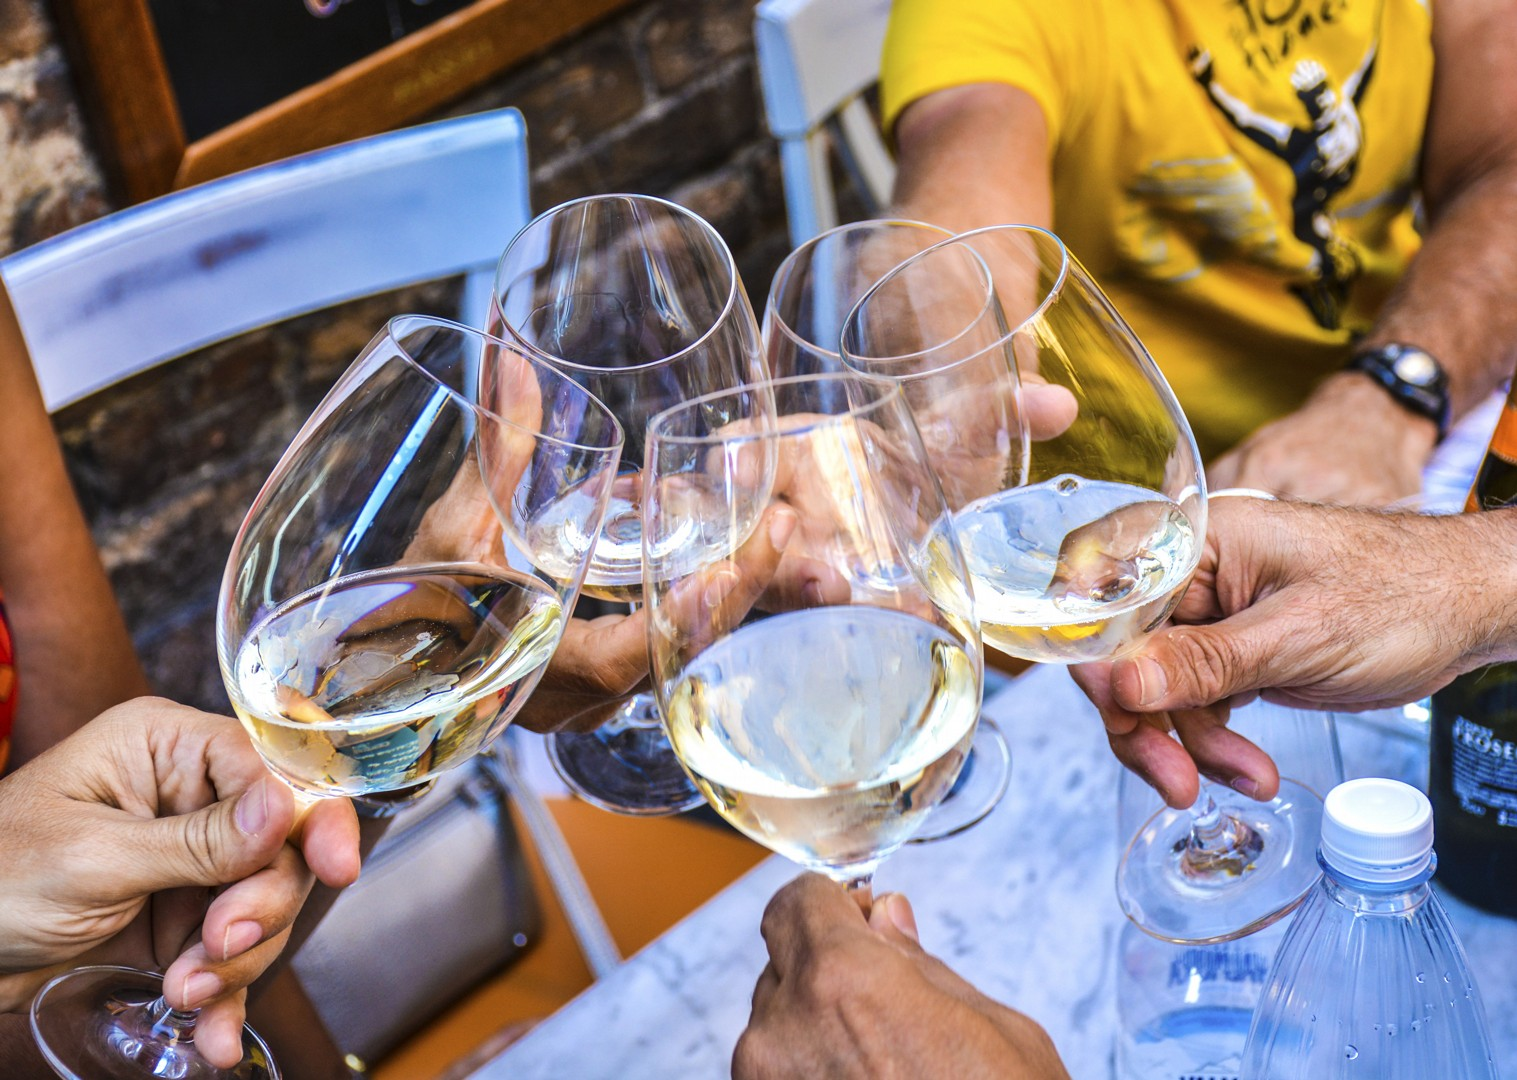 white-wine-traditional-italy-fine-food-cycling-tour.jpg - Italy - Tuscany Tourer - Road Cycling